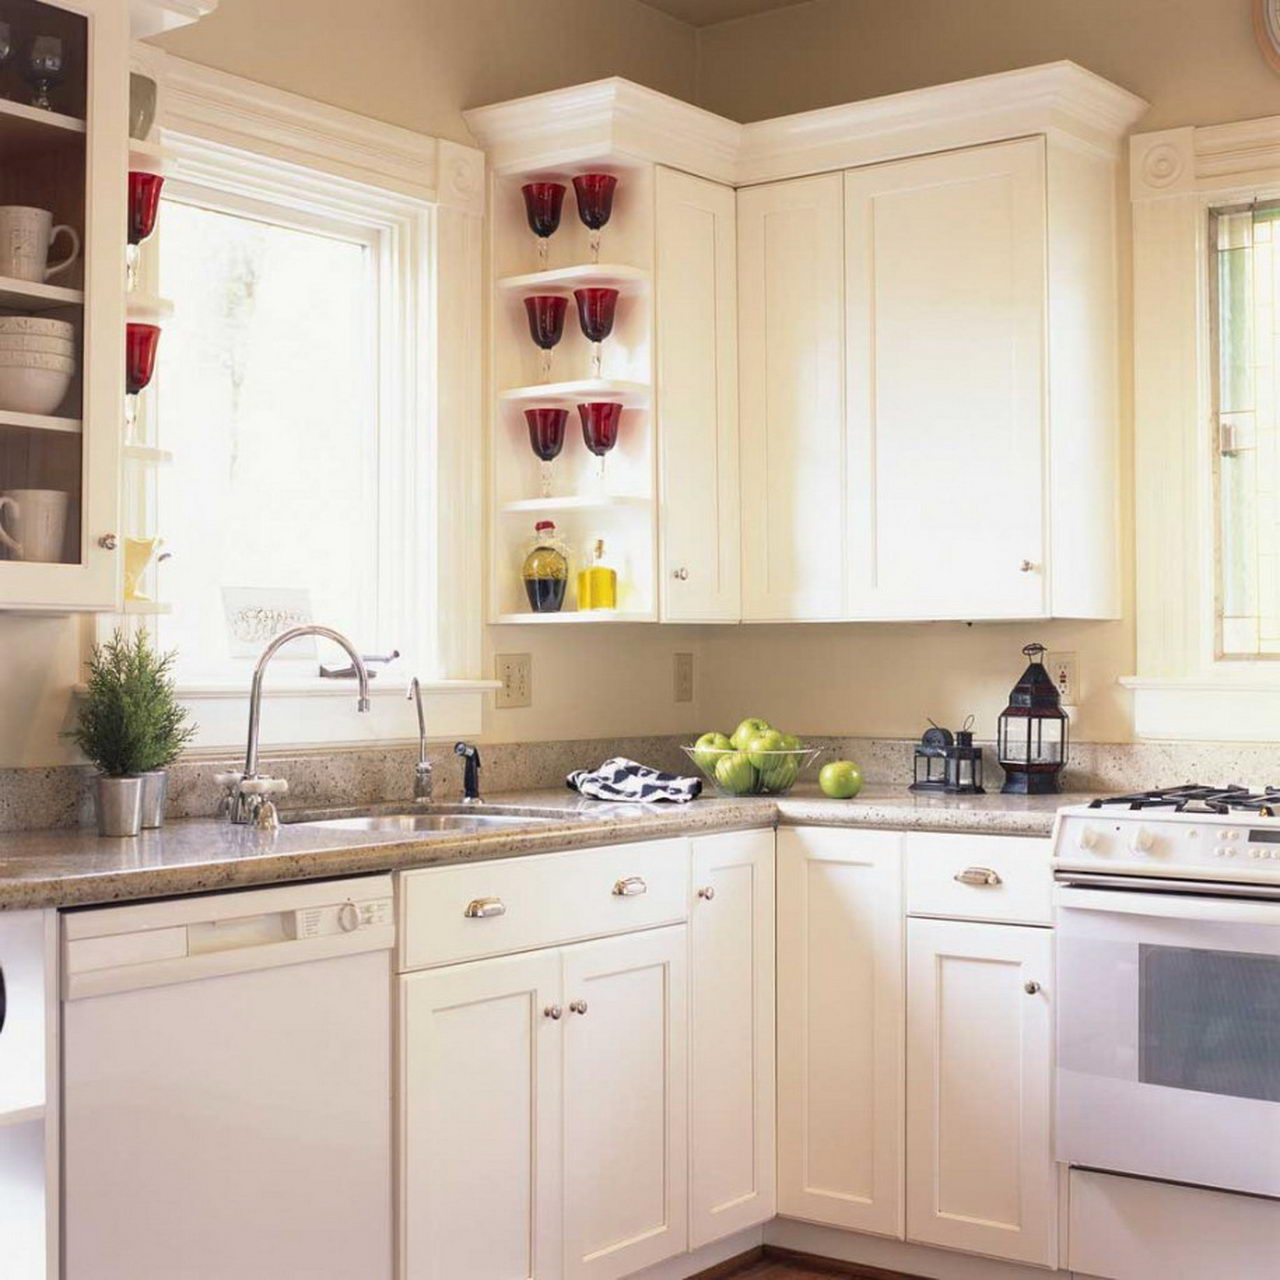 Simple White Kitchen Cabinets: 42 Best Kitchen Design Ideas With Different Styles And